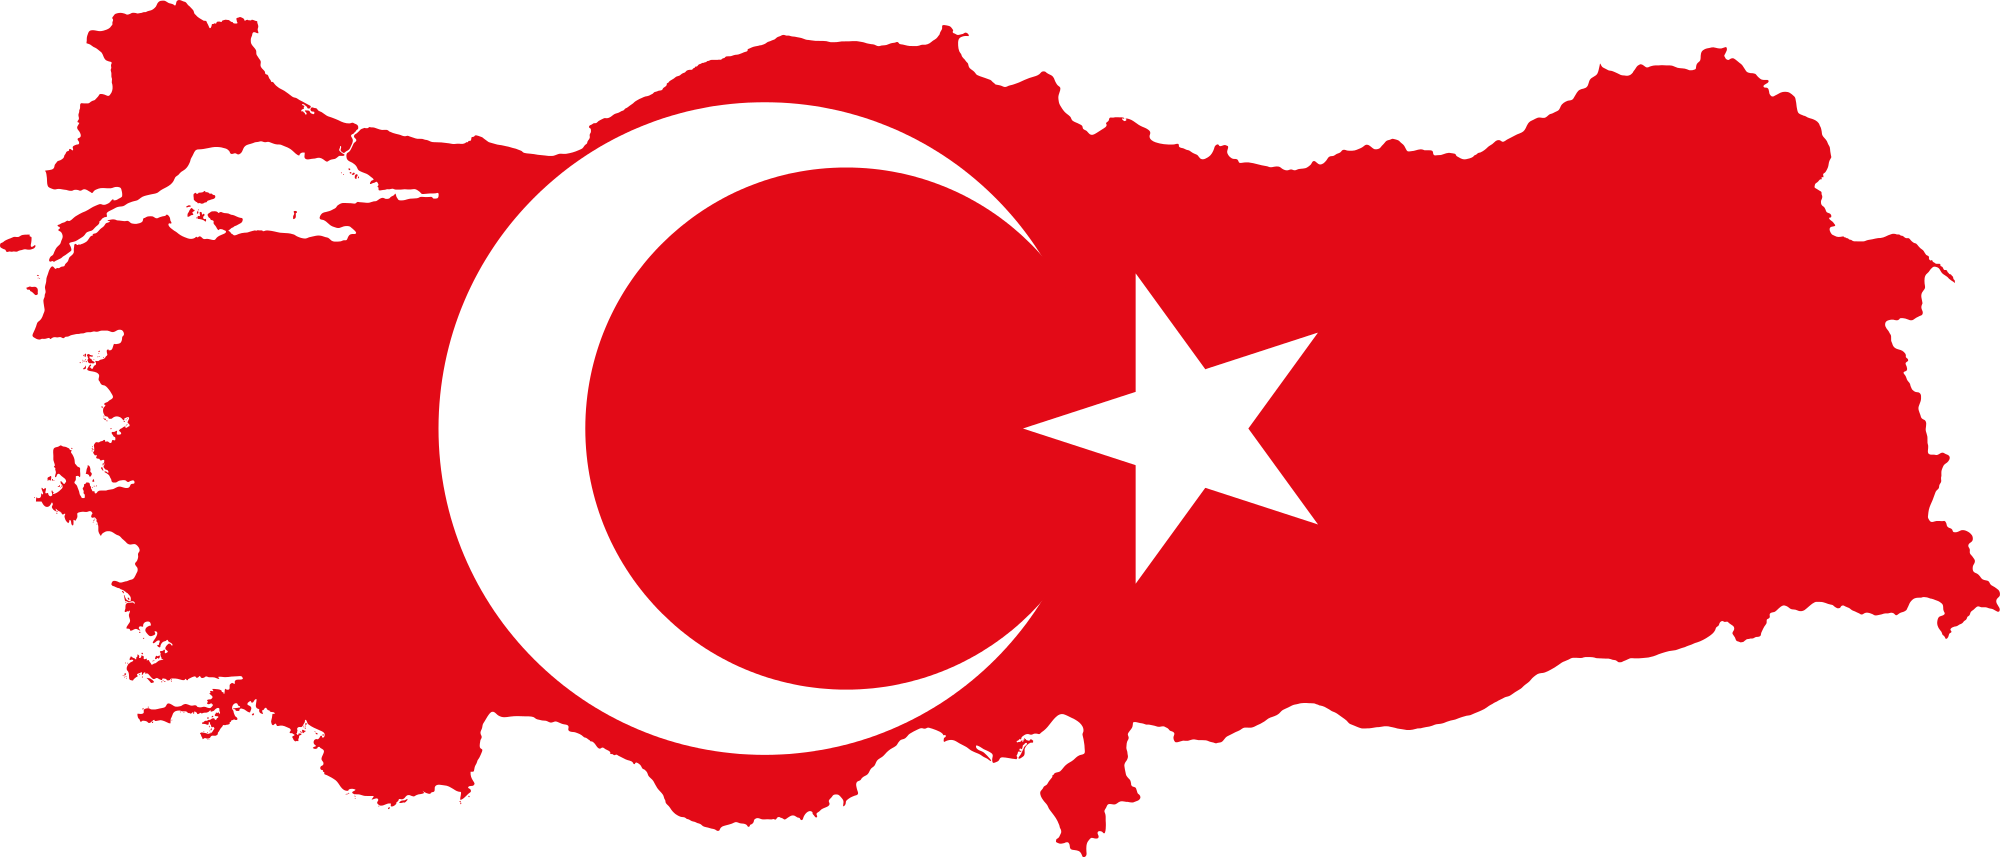 Turkey country clipart vector black and white stock Turkish Prime Minister Issues Secular Pledge for New Constitution vector black and white stock